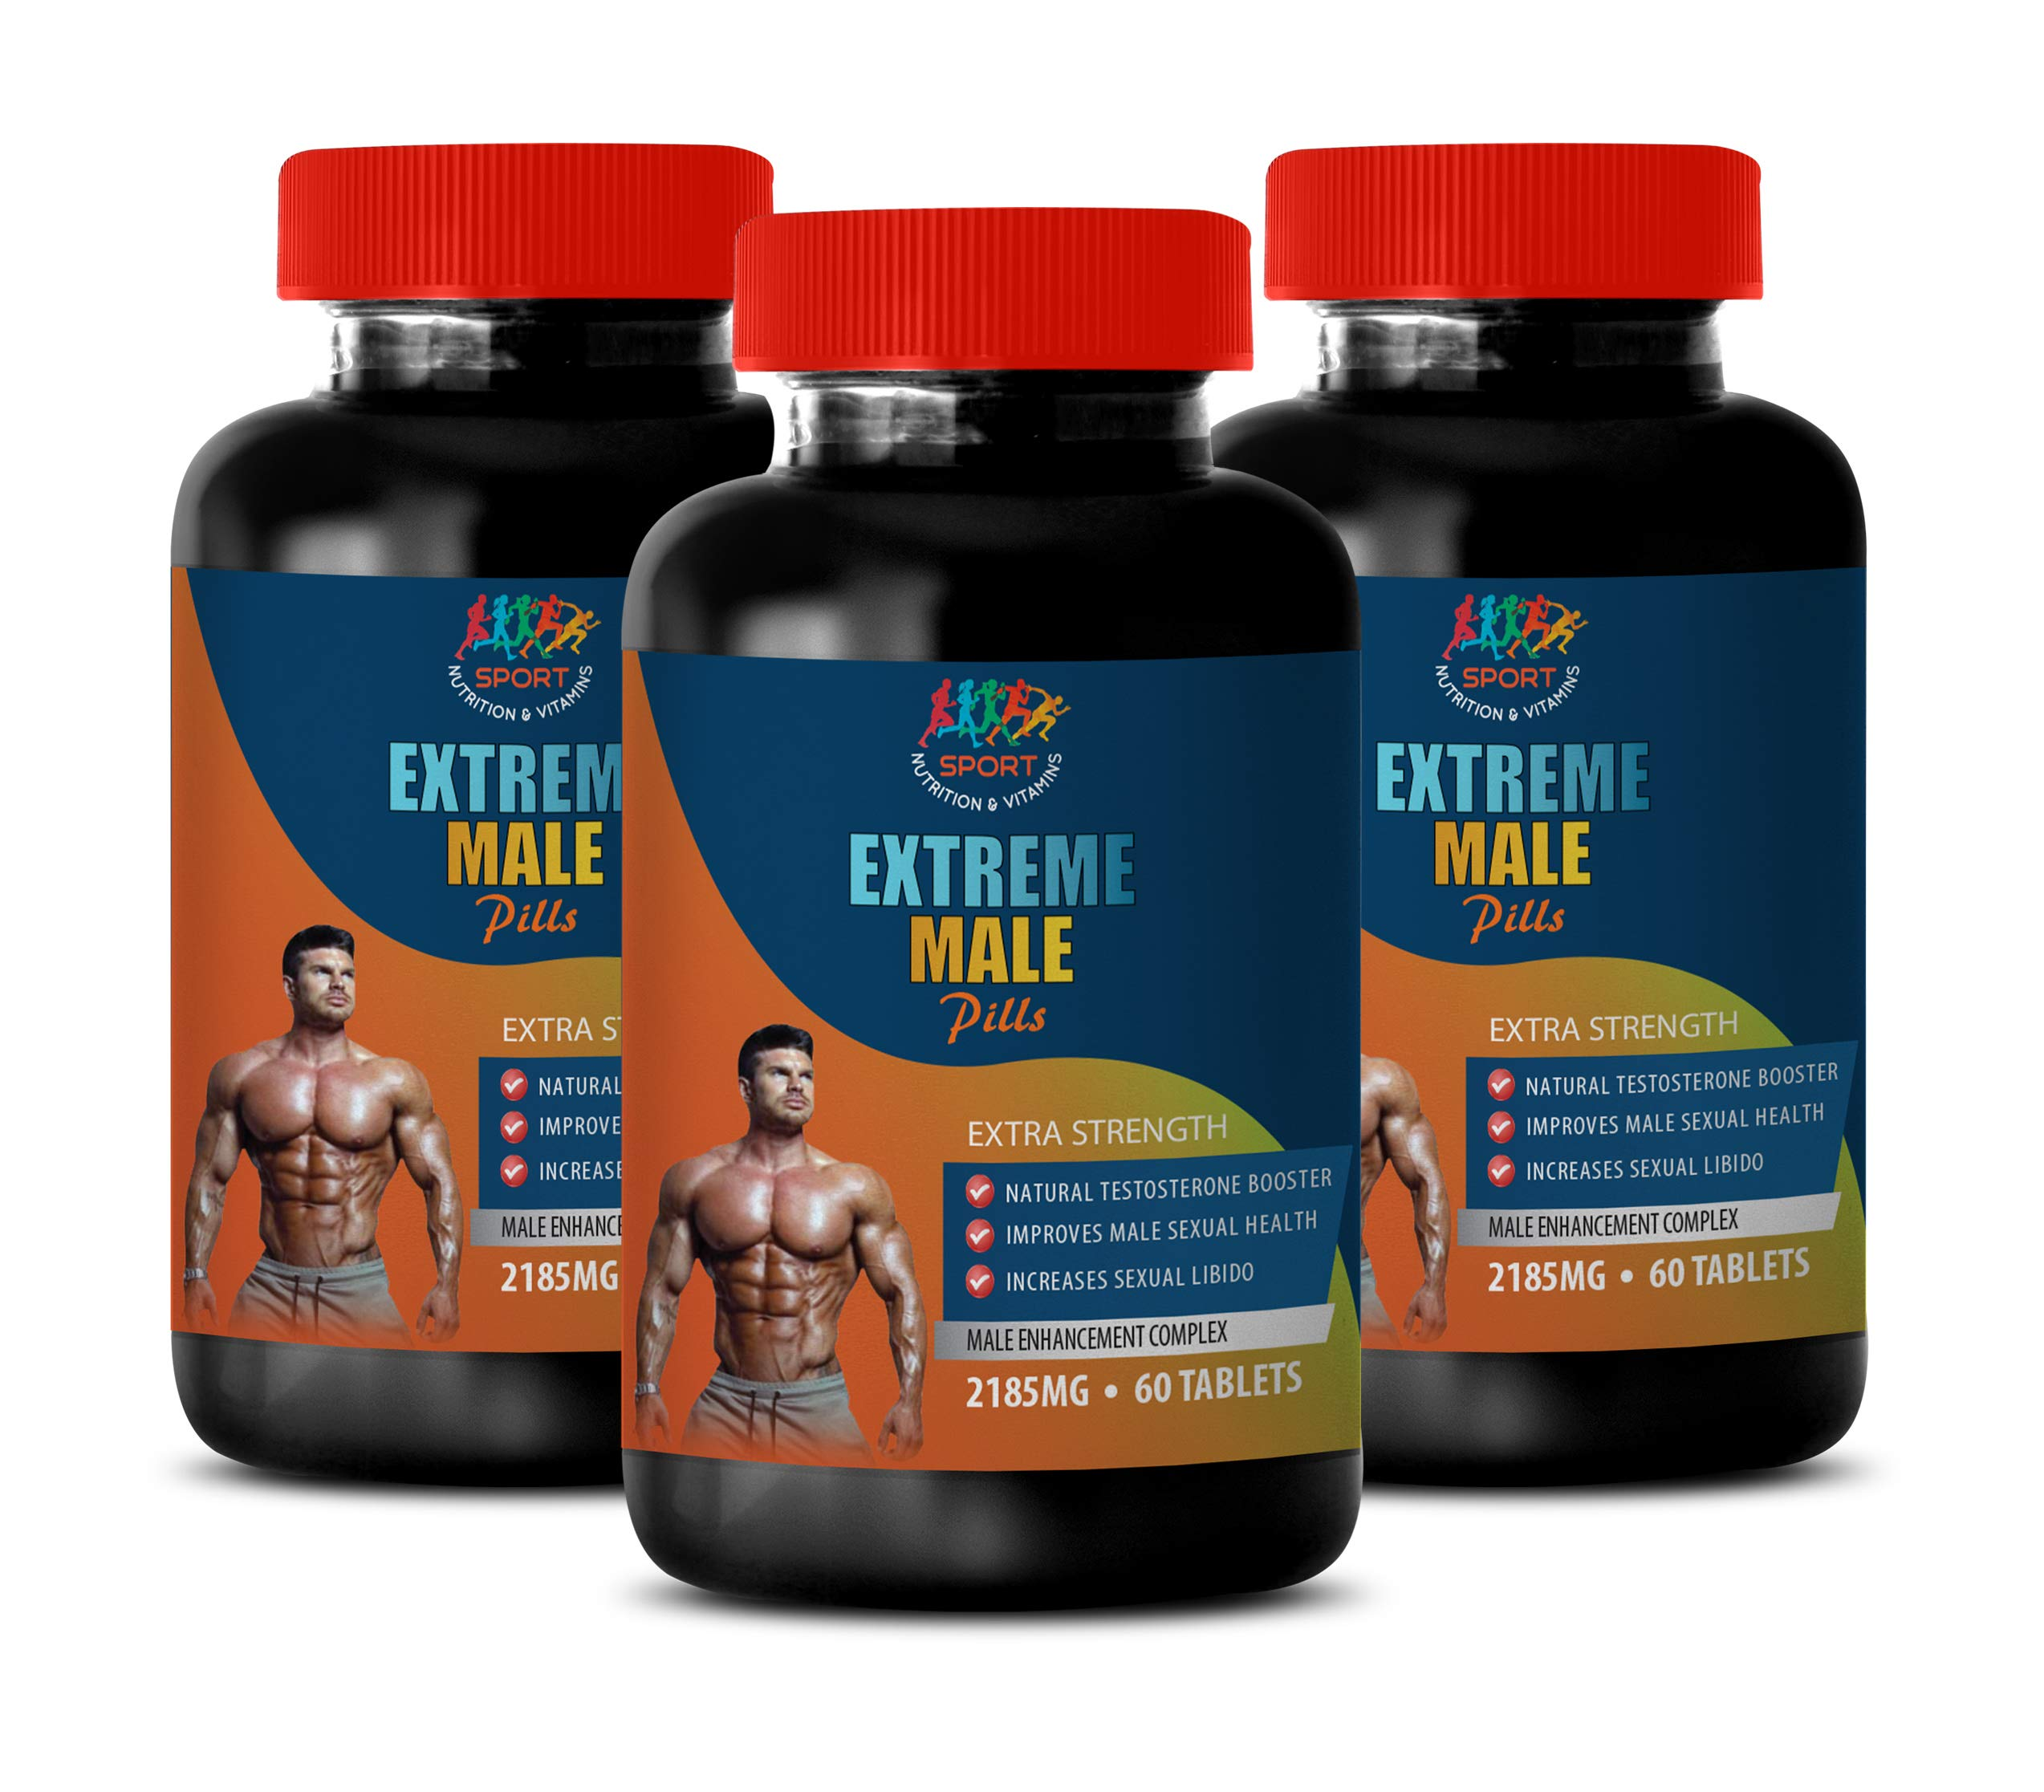 libido Booster for Men Sex - Extreme Male Pills - Extra Strength - Muira puama Herbal Supplements - 3 Bottles 180 Tablets by Sport Nutrition & Vitamins USA